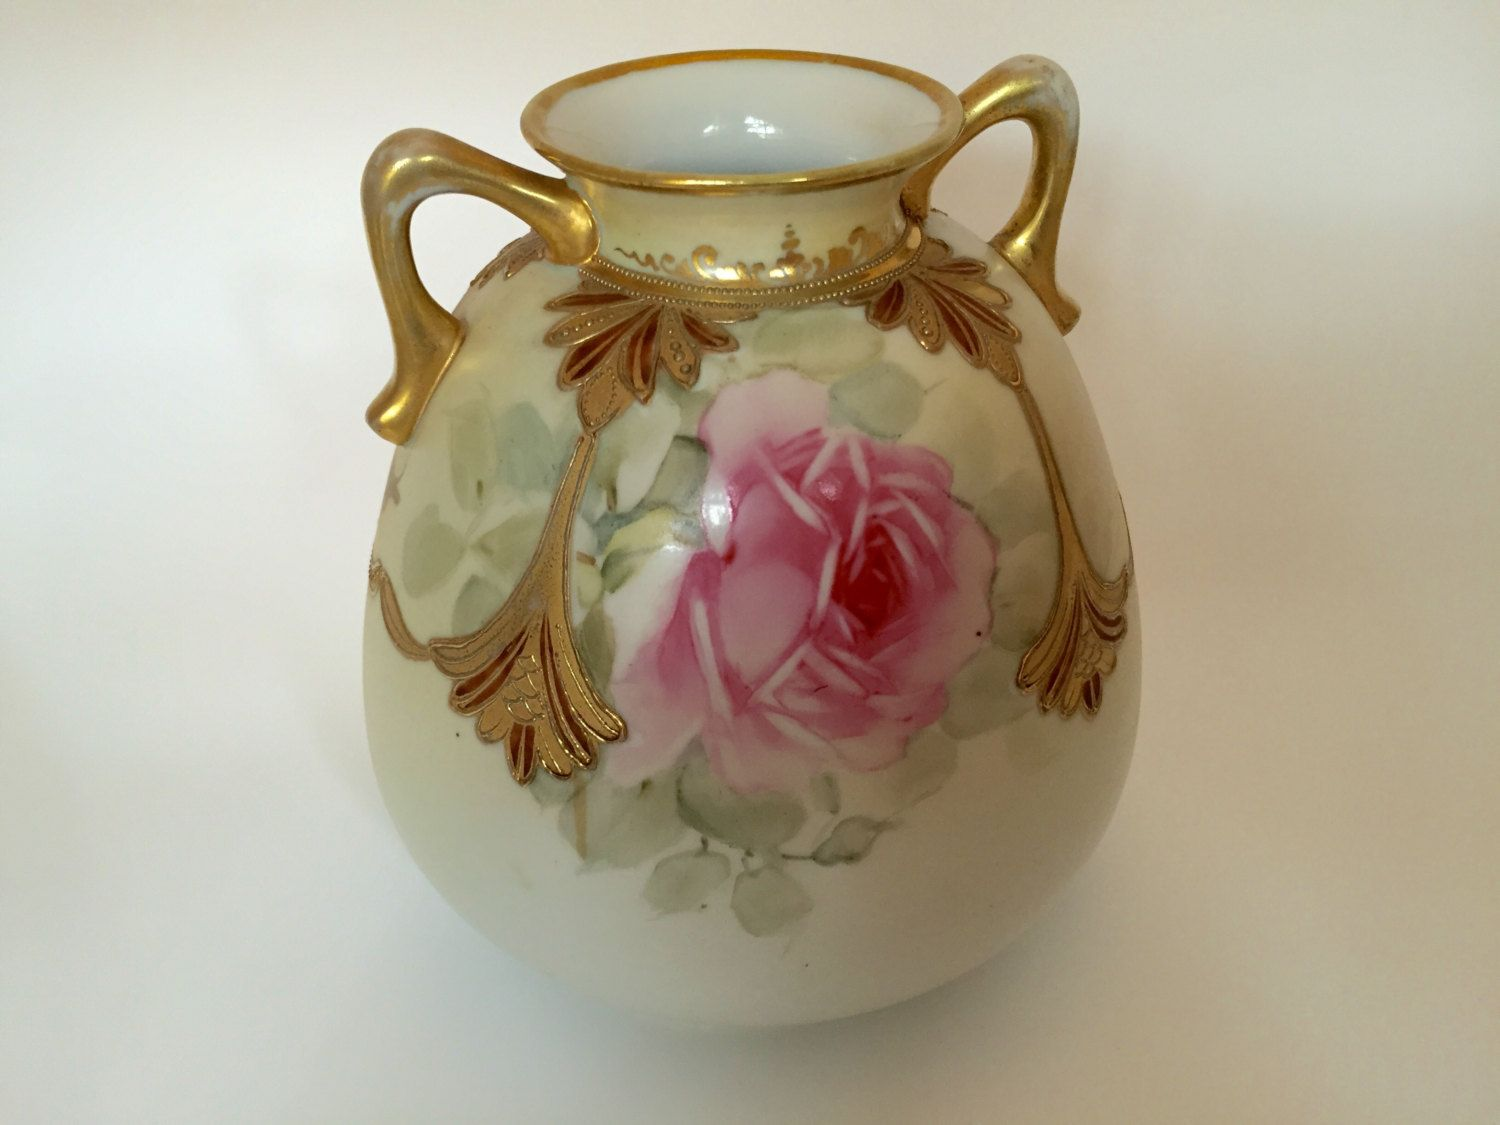 Antique nippon double handle vase hand painted with gold moriage antique nippon double handle vase hand painted with gold moriage accent by jfrmre on etsy antique nippon vase double handle hand painted roses and gold reviewsmspy